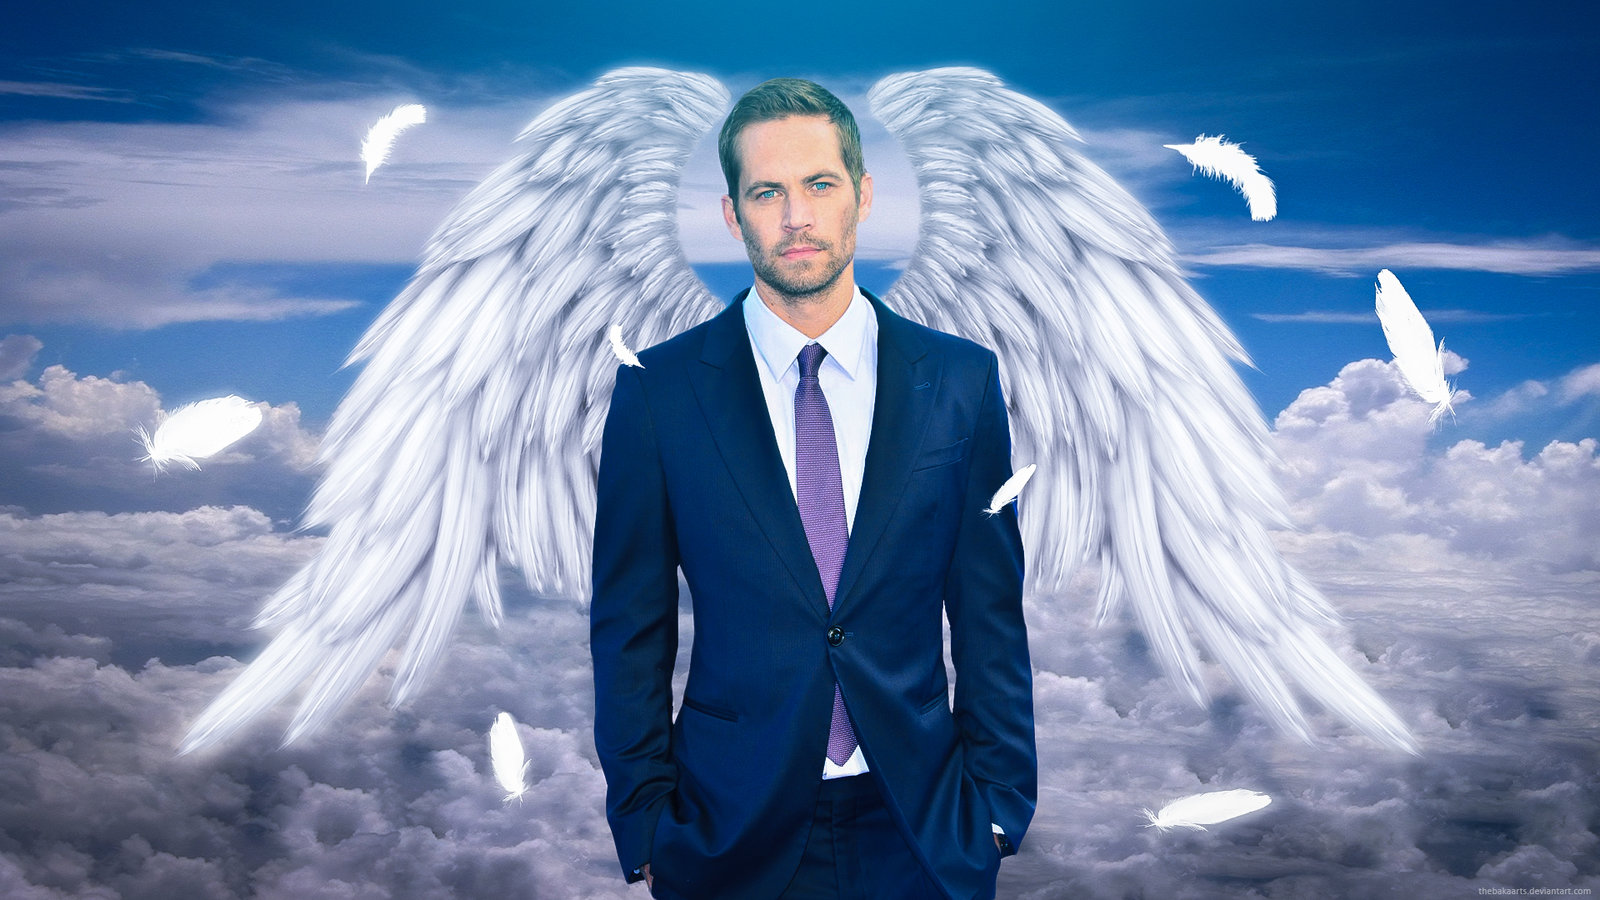 paul_walker_tribute___photo_manipulation___wp_by_thebakaarts-d6wlpot